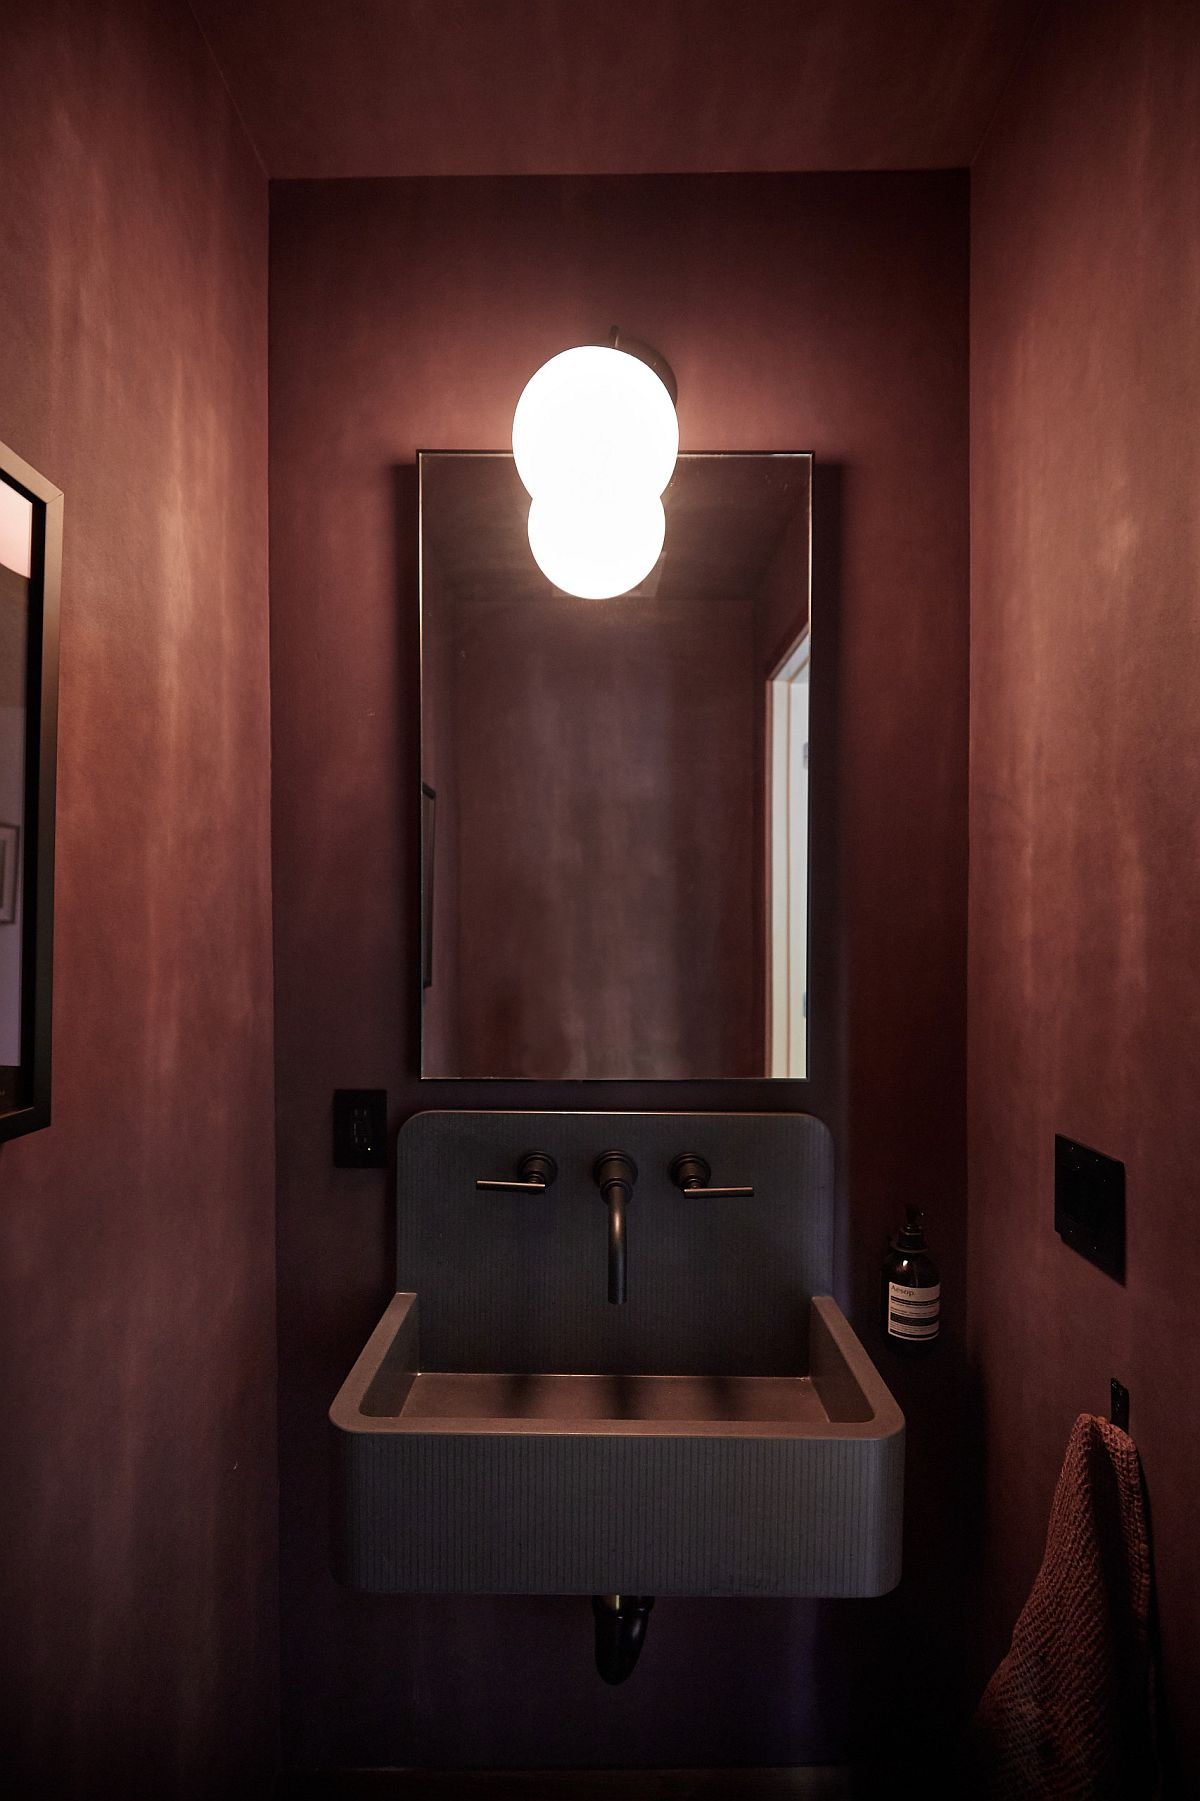 Textured walls in deep red create a sophisticated atmosphere inside the small powder room